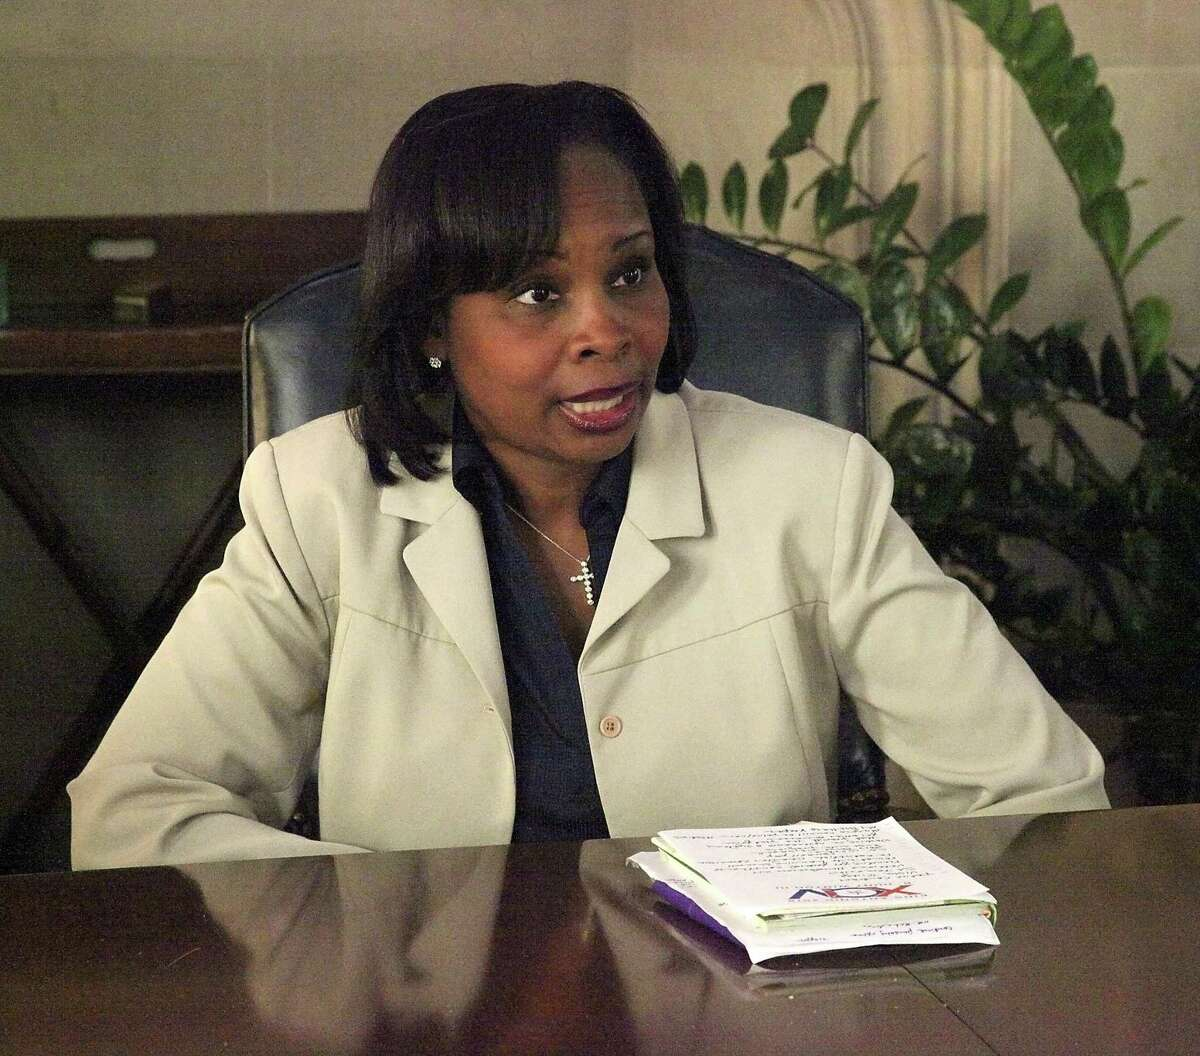 """Mayor Ivy Taylor responds to a viral video of her saying that she viewed the """"deepest systemic causes of generational poverty"""" in San Antonio as """"broken people"""" who are not """"in relationship with their Creator."""""""